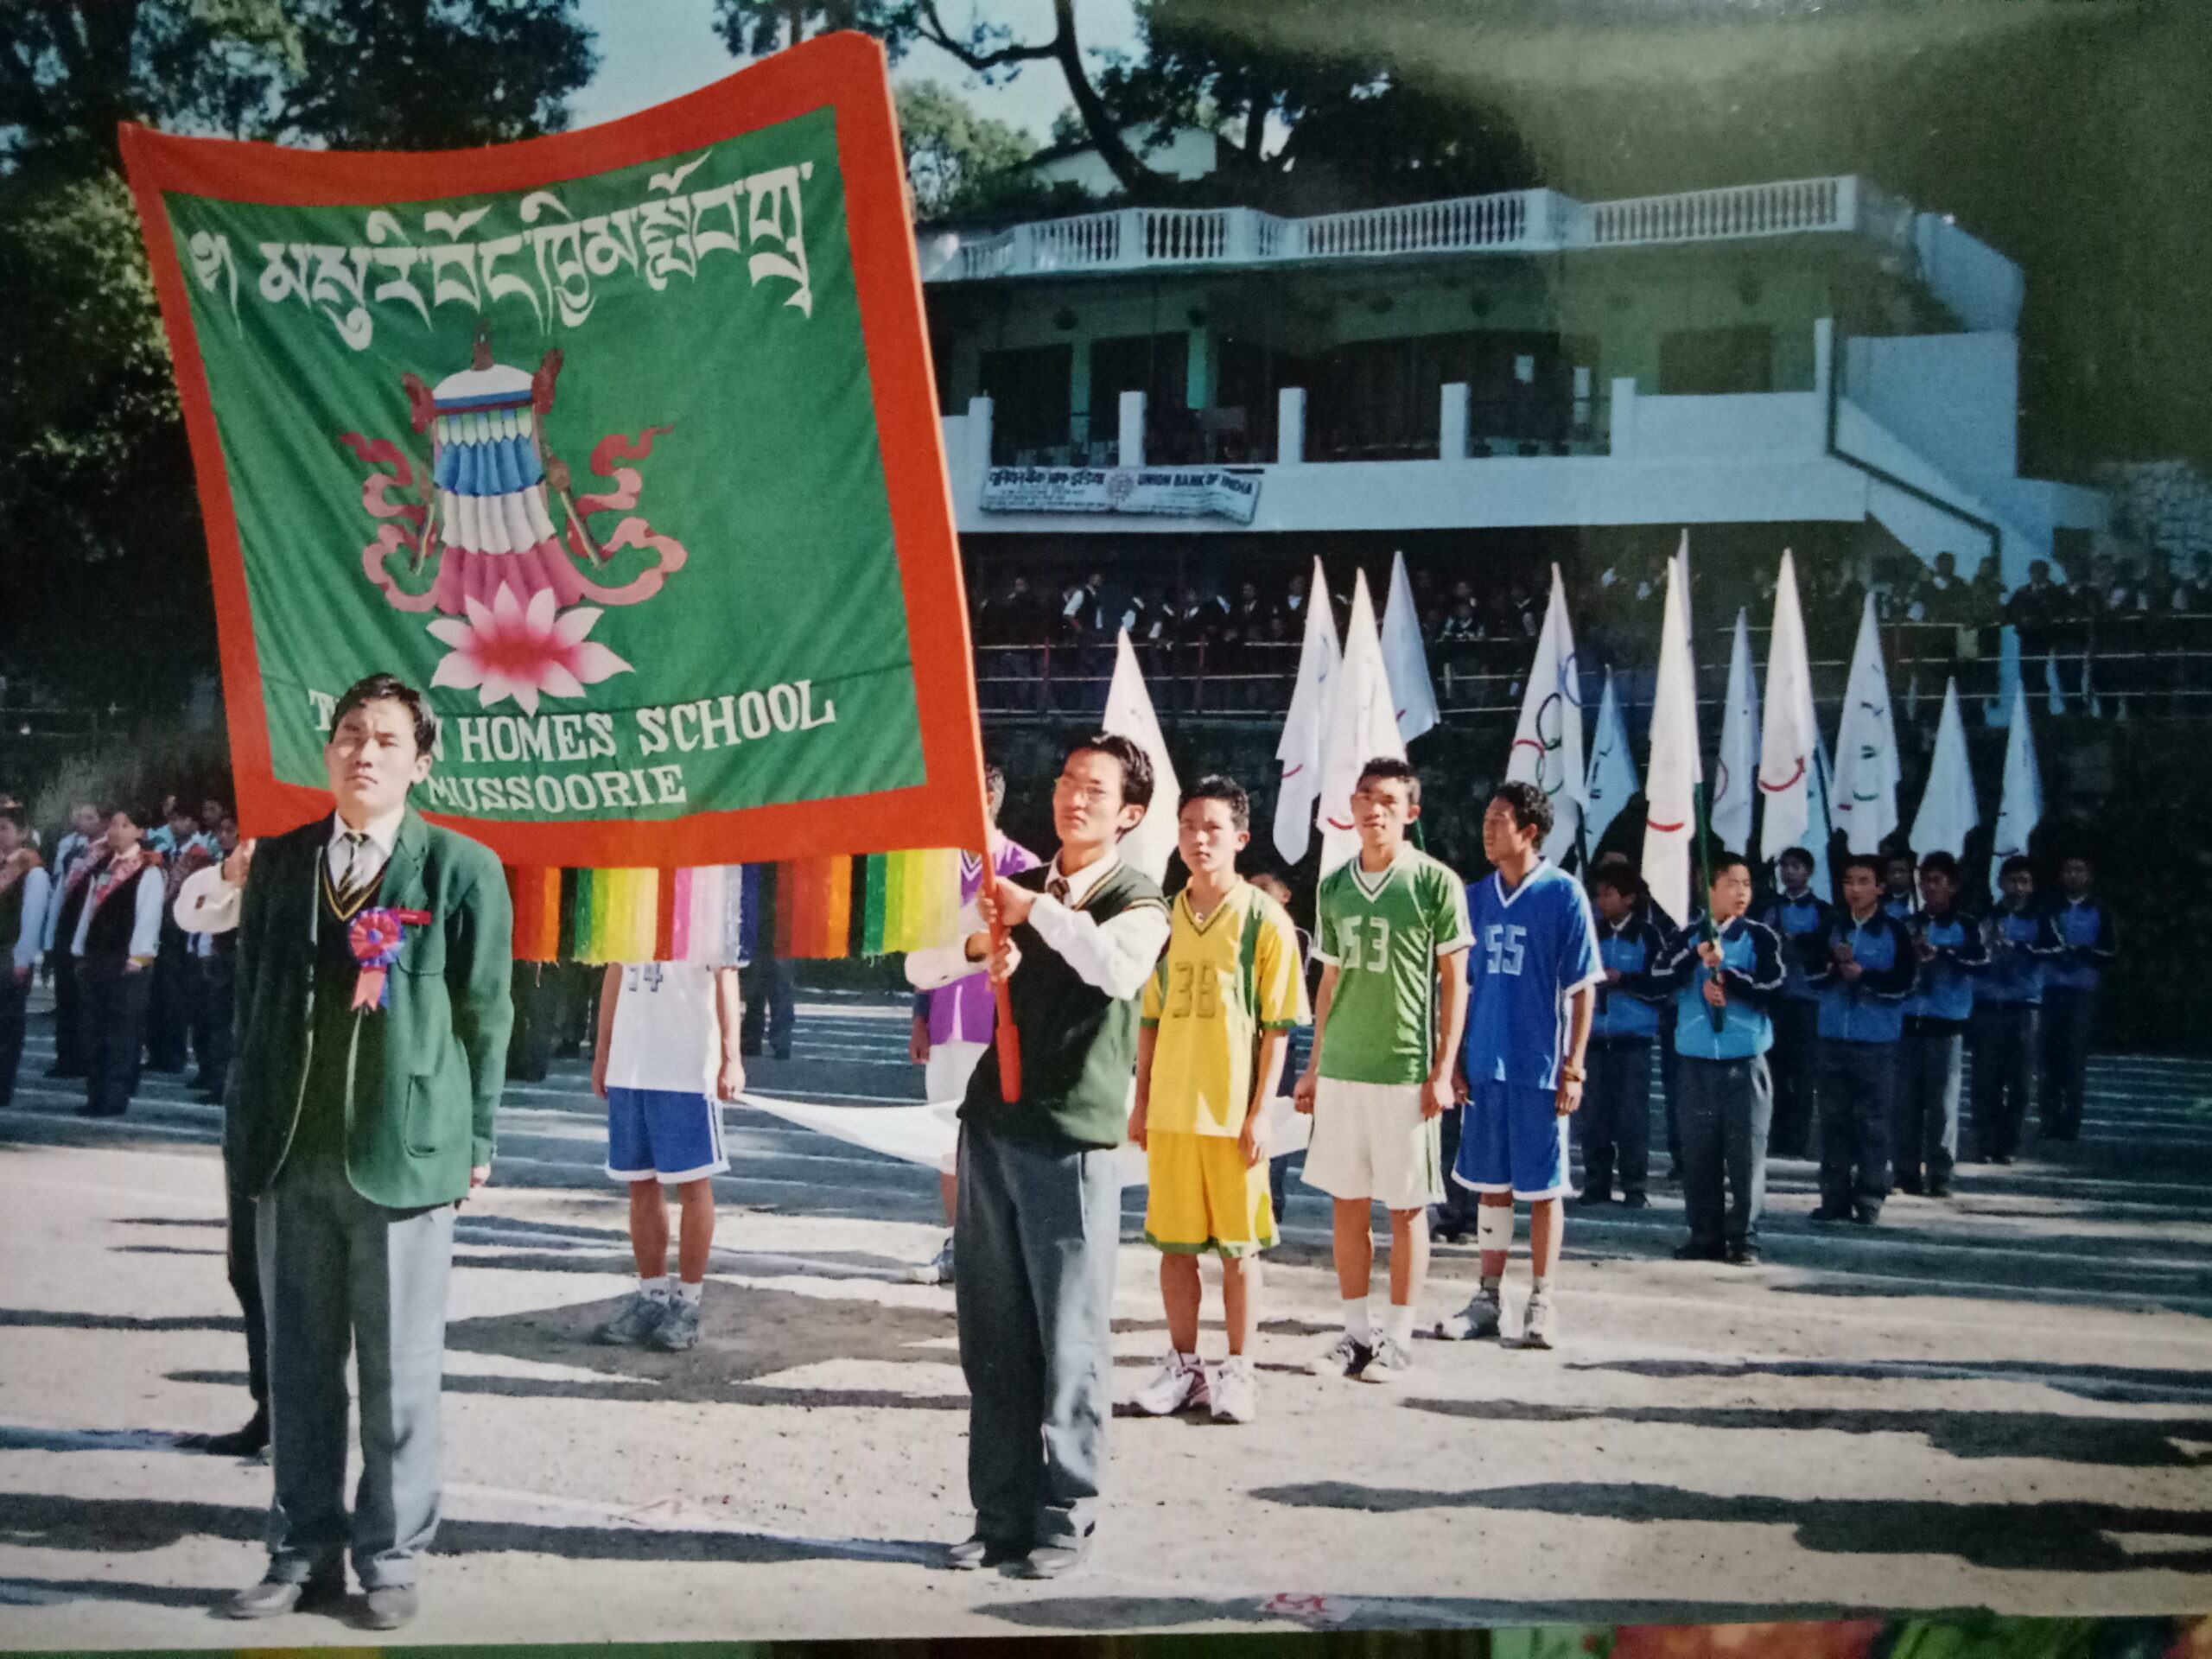 Nyima Gyaltsen (standing in front) as the School Captain during Annual Sports Day of Tibetan Homes, Mussoorie, 2004.